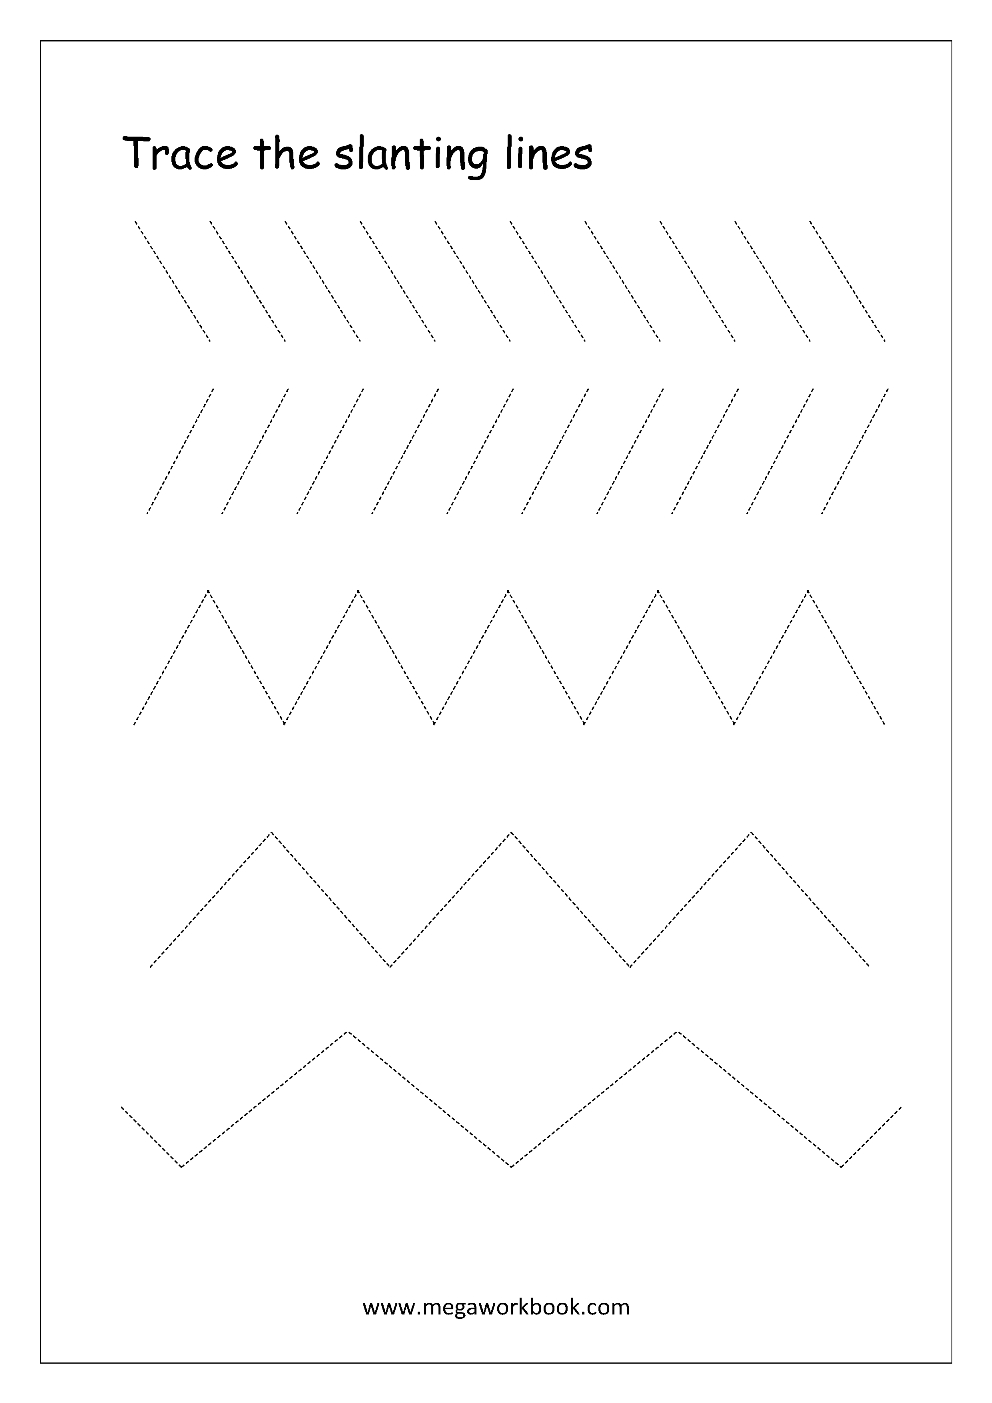 Free Printable Pre-Writing Tracing Worksheets For Preschoolers - Free Printable Preschool Worksheets Tracing Lines